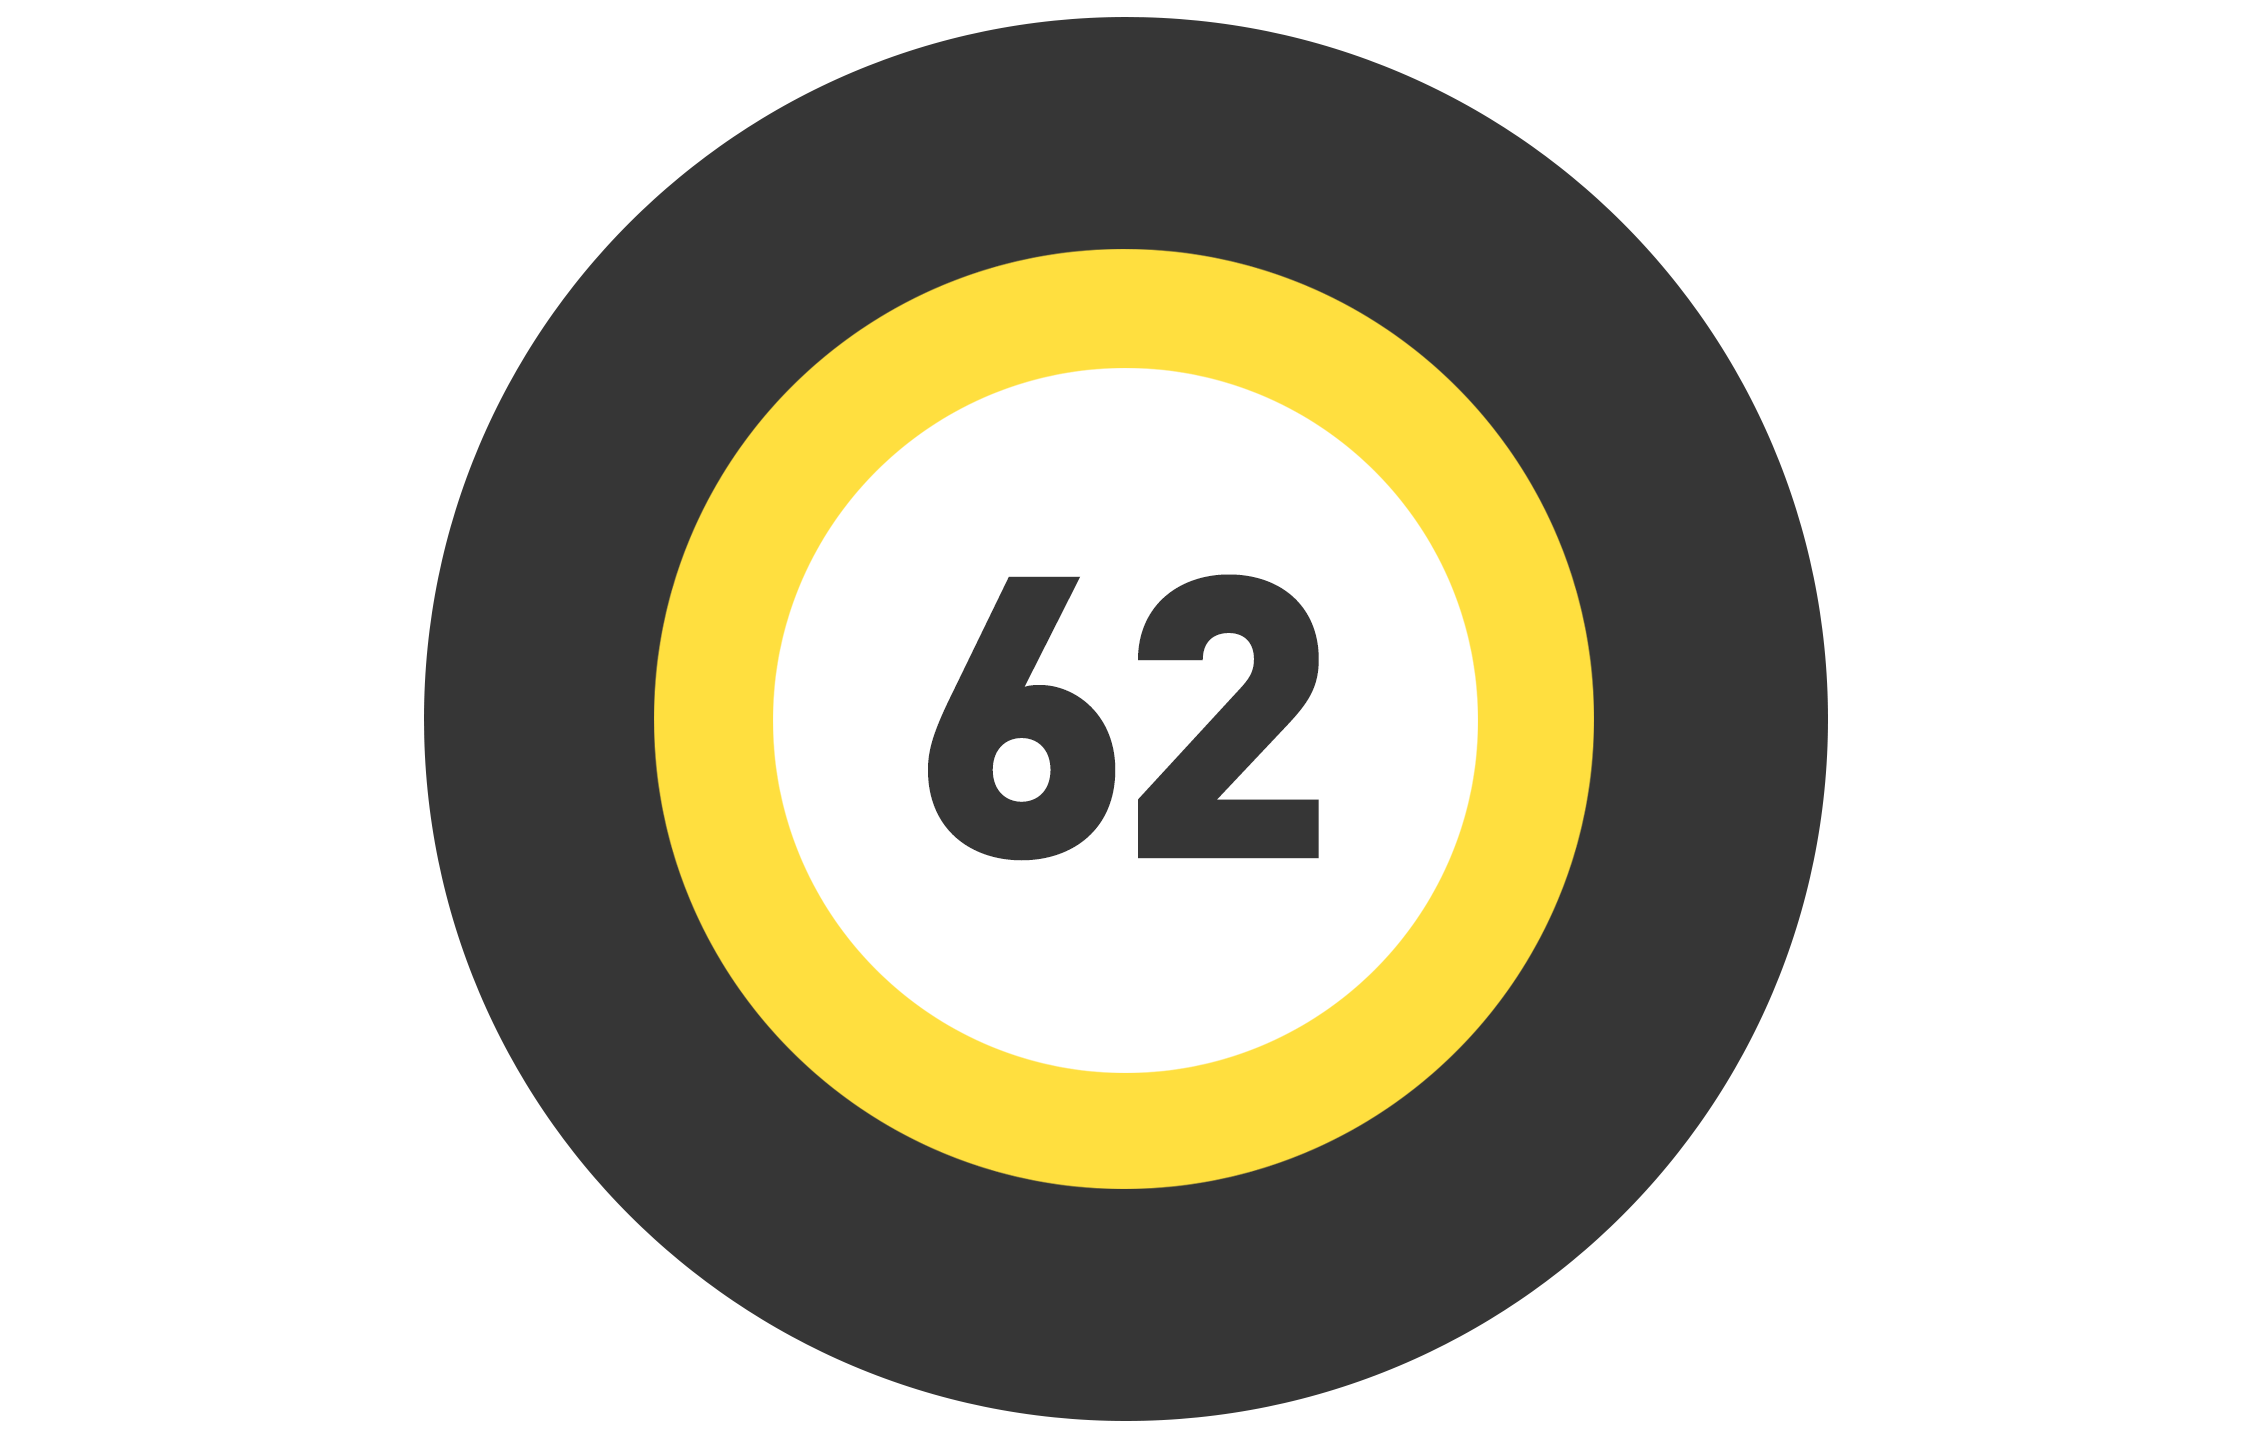 62c.png